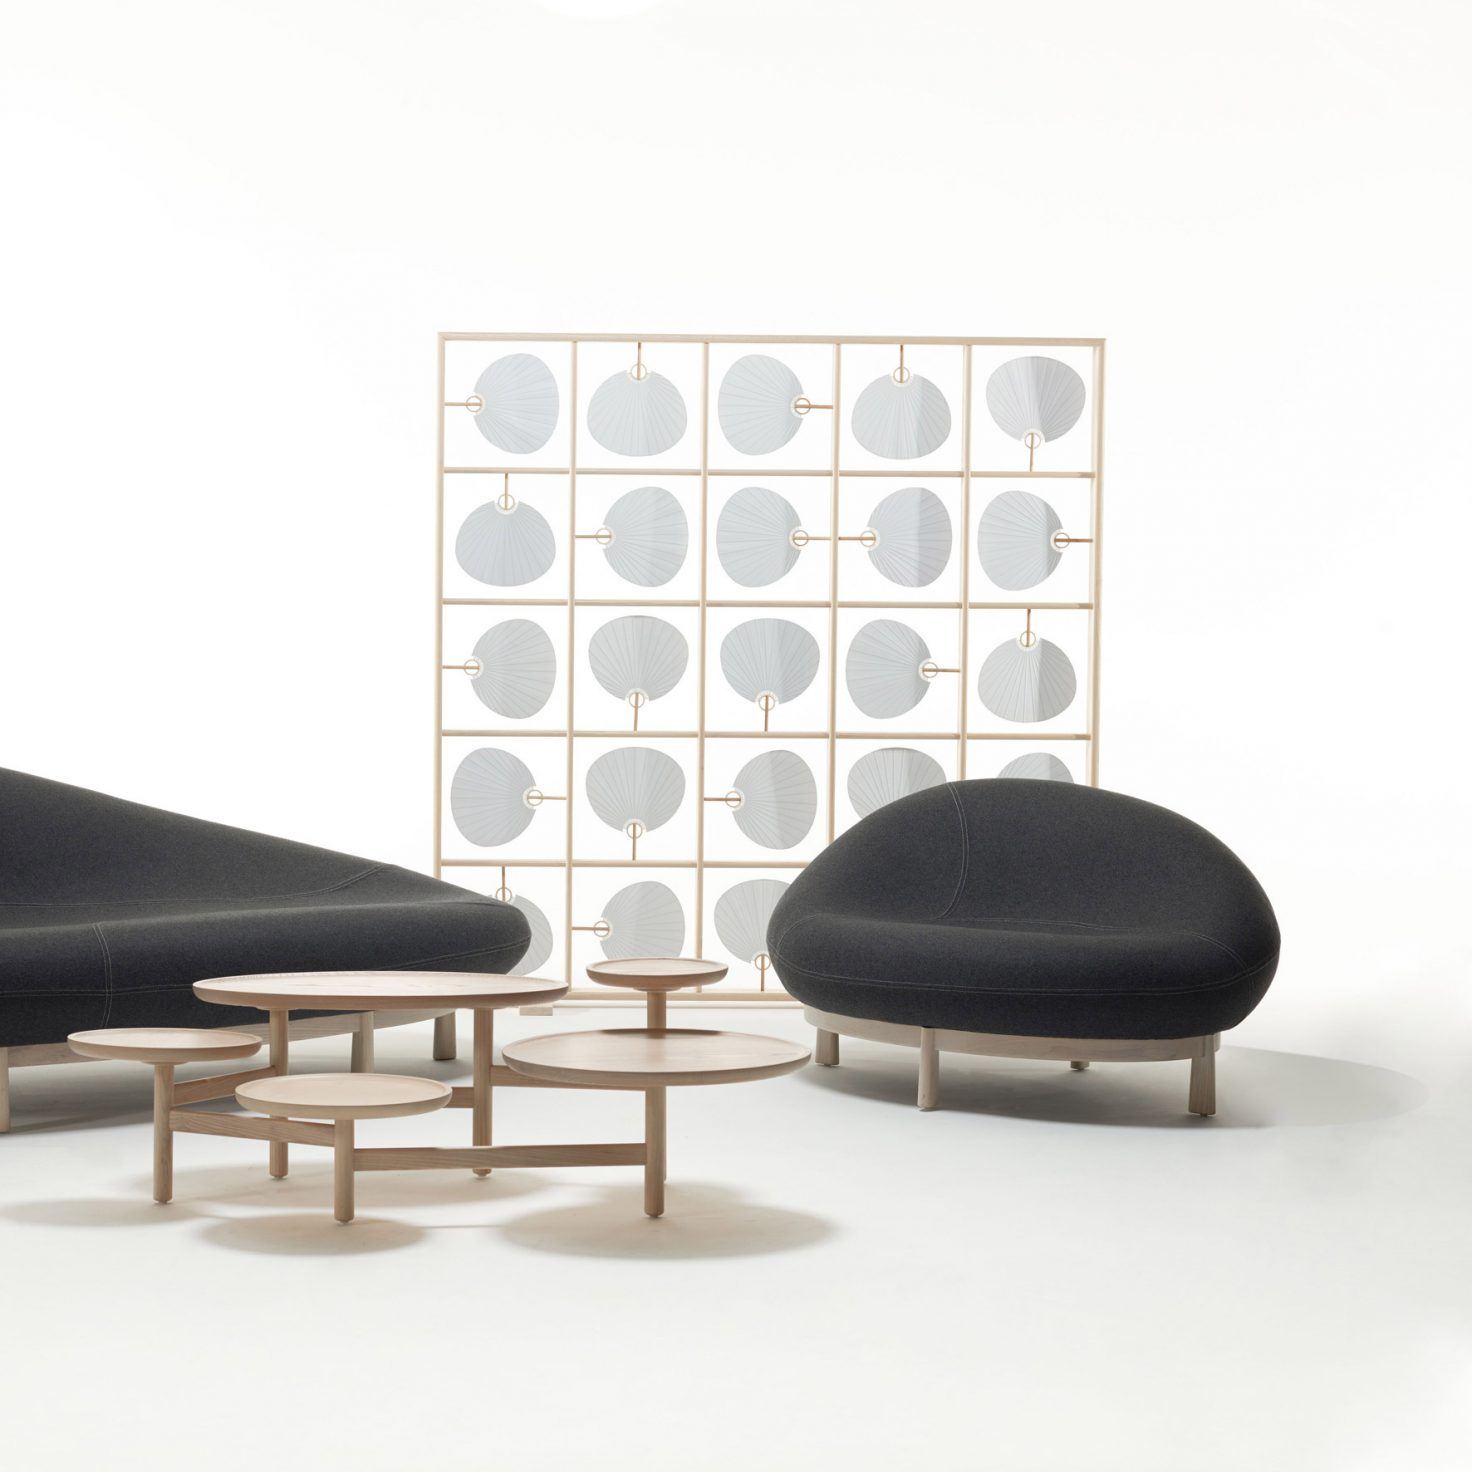 Six contemporary Chinese furniture designers leading the industry